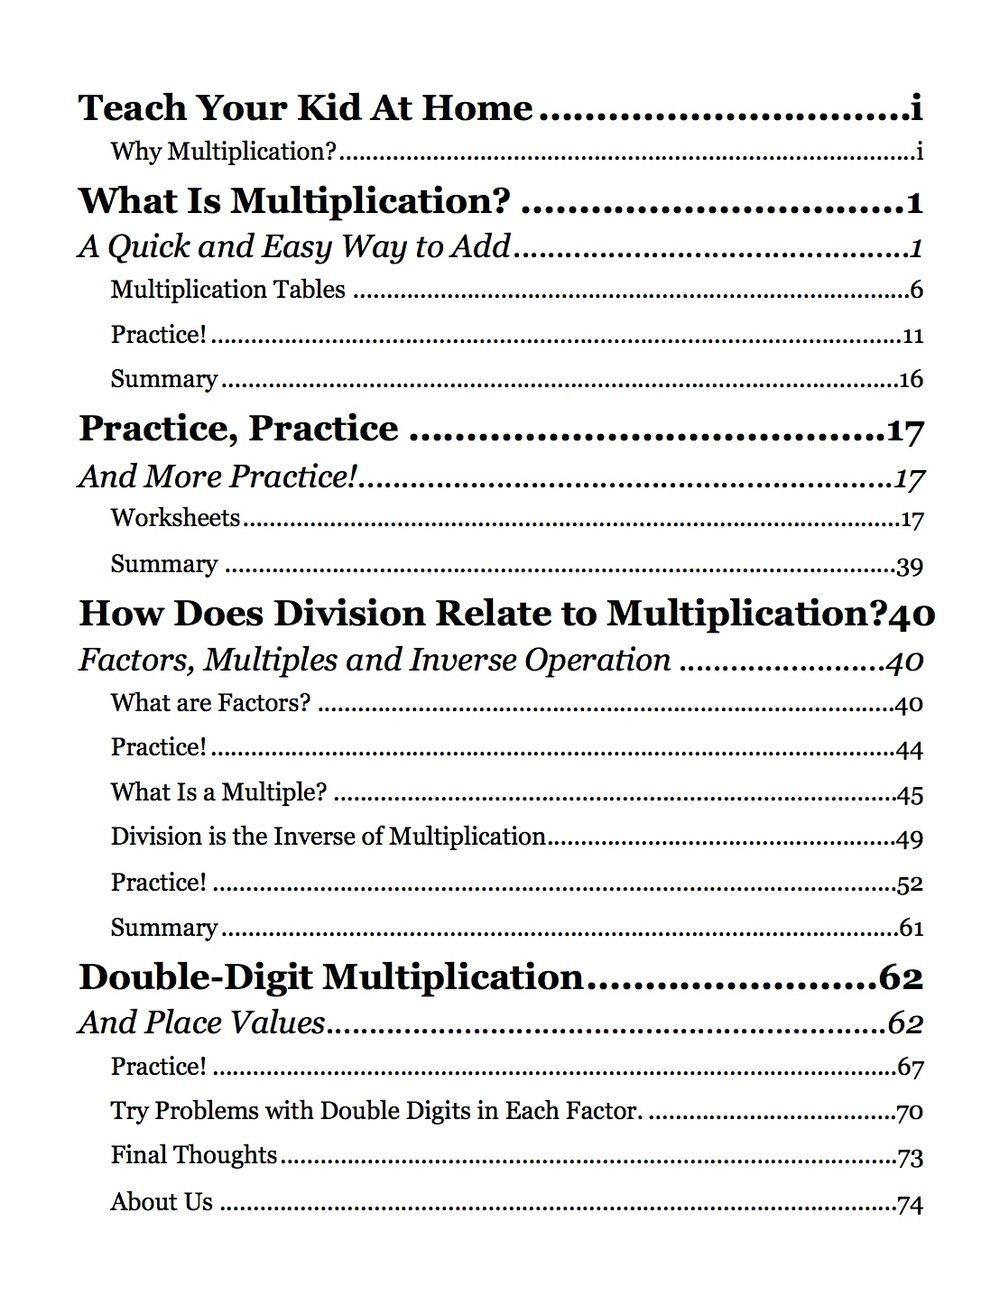 Teach Your Kid at Home: Multiplication